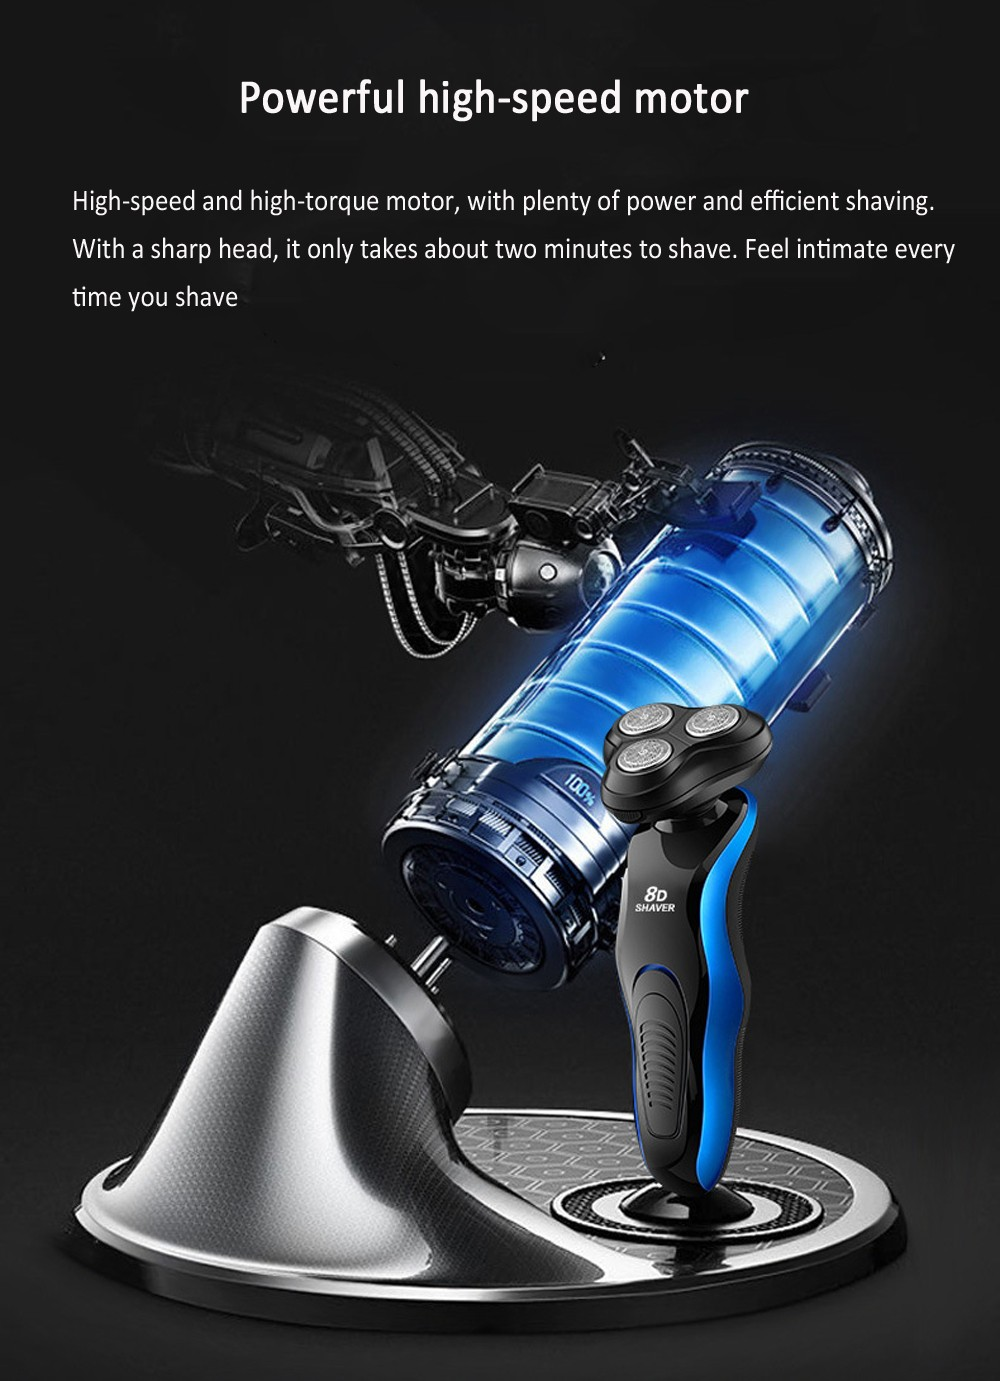 S400 8D Electric Shaver Full Body Washable Rechargeable Beard Cutter Rotary Three Blades Razor - Blue